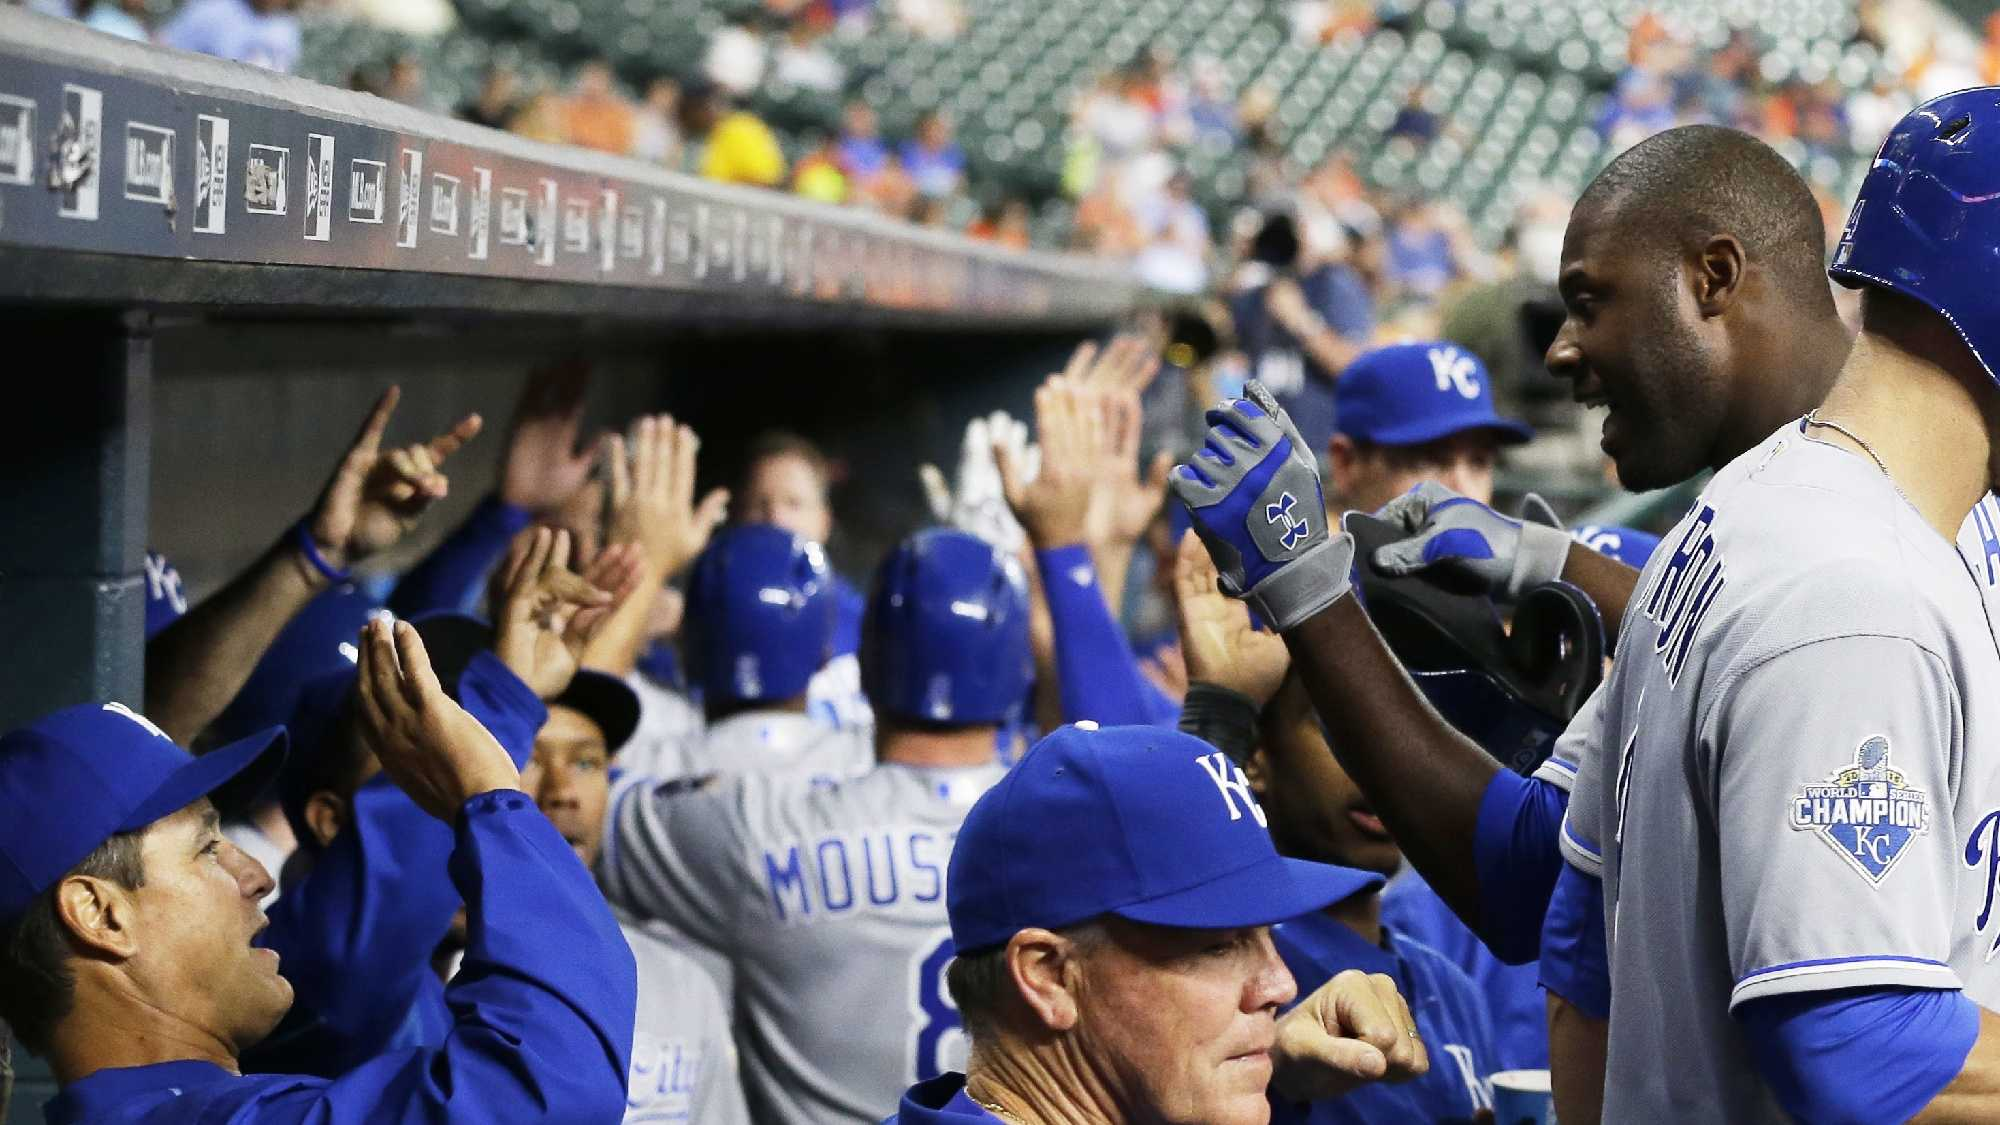 Kansas City Royals' Lorenzo Cain, right, is welcomed back to the dugout after hitting a three-run home run against the Houston Astros during the first inning of a baseball game Tuesday, April 12, 2016, in Houston. (AP Photo/Pat Sullivan)